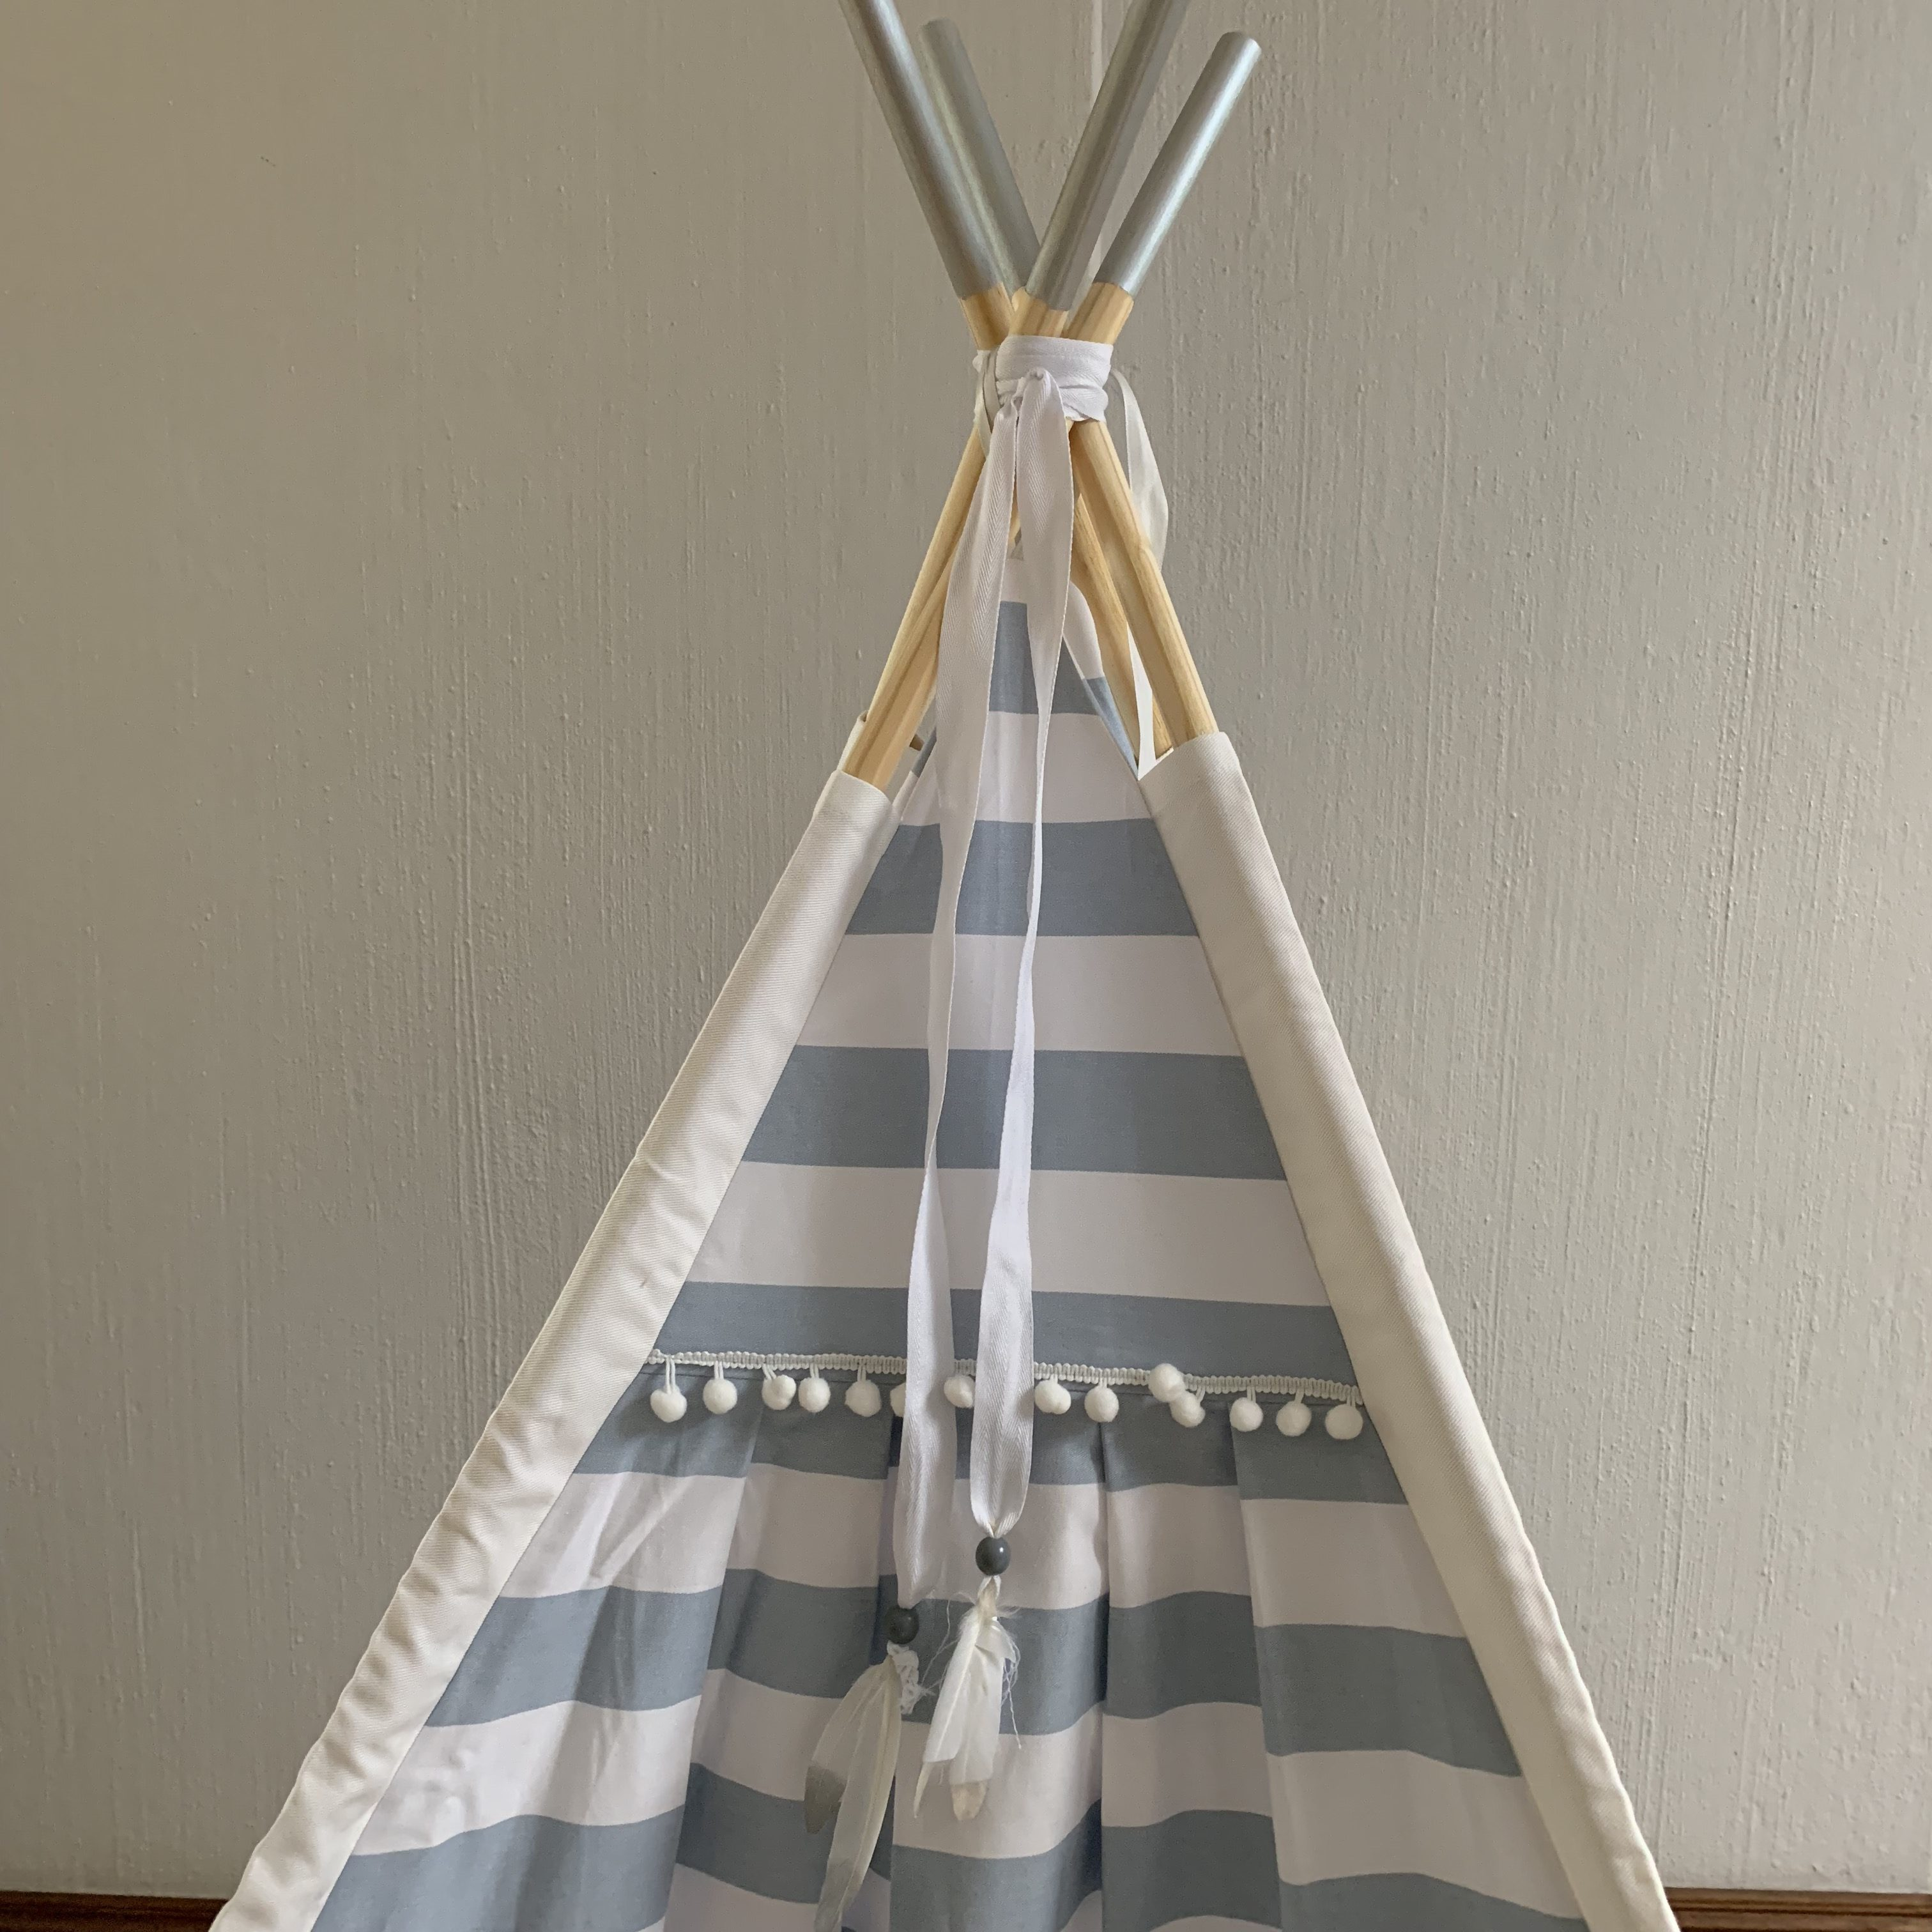 Gender neutral teepees for children